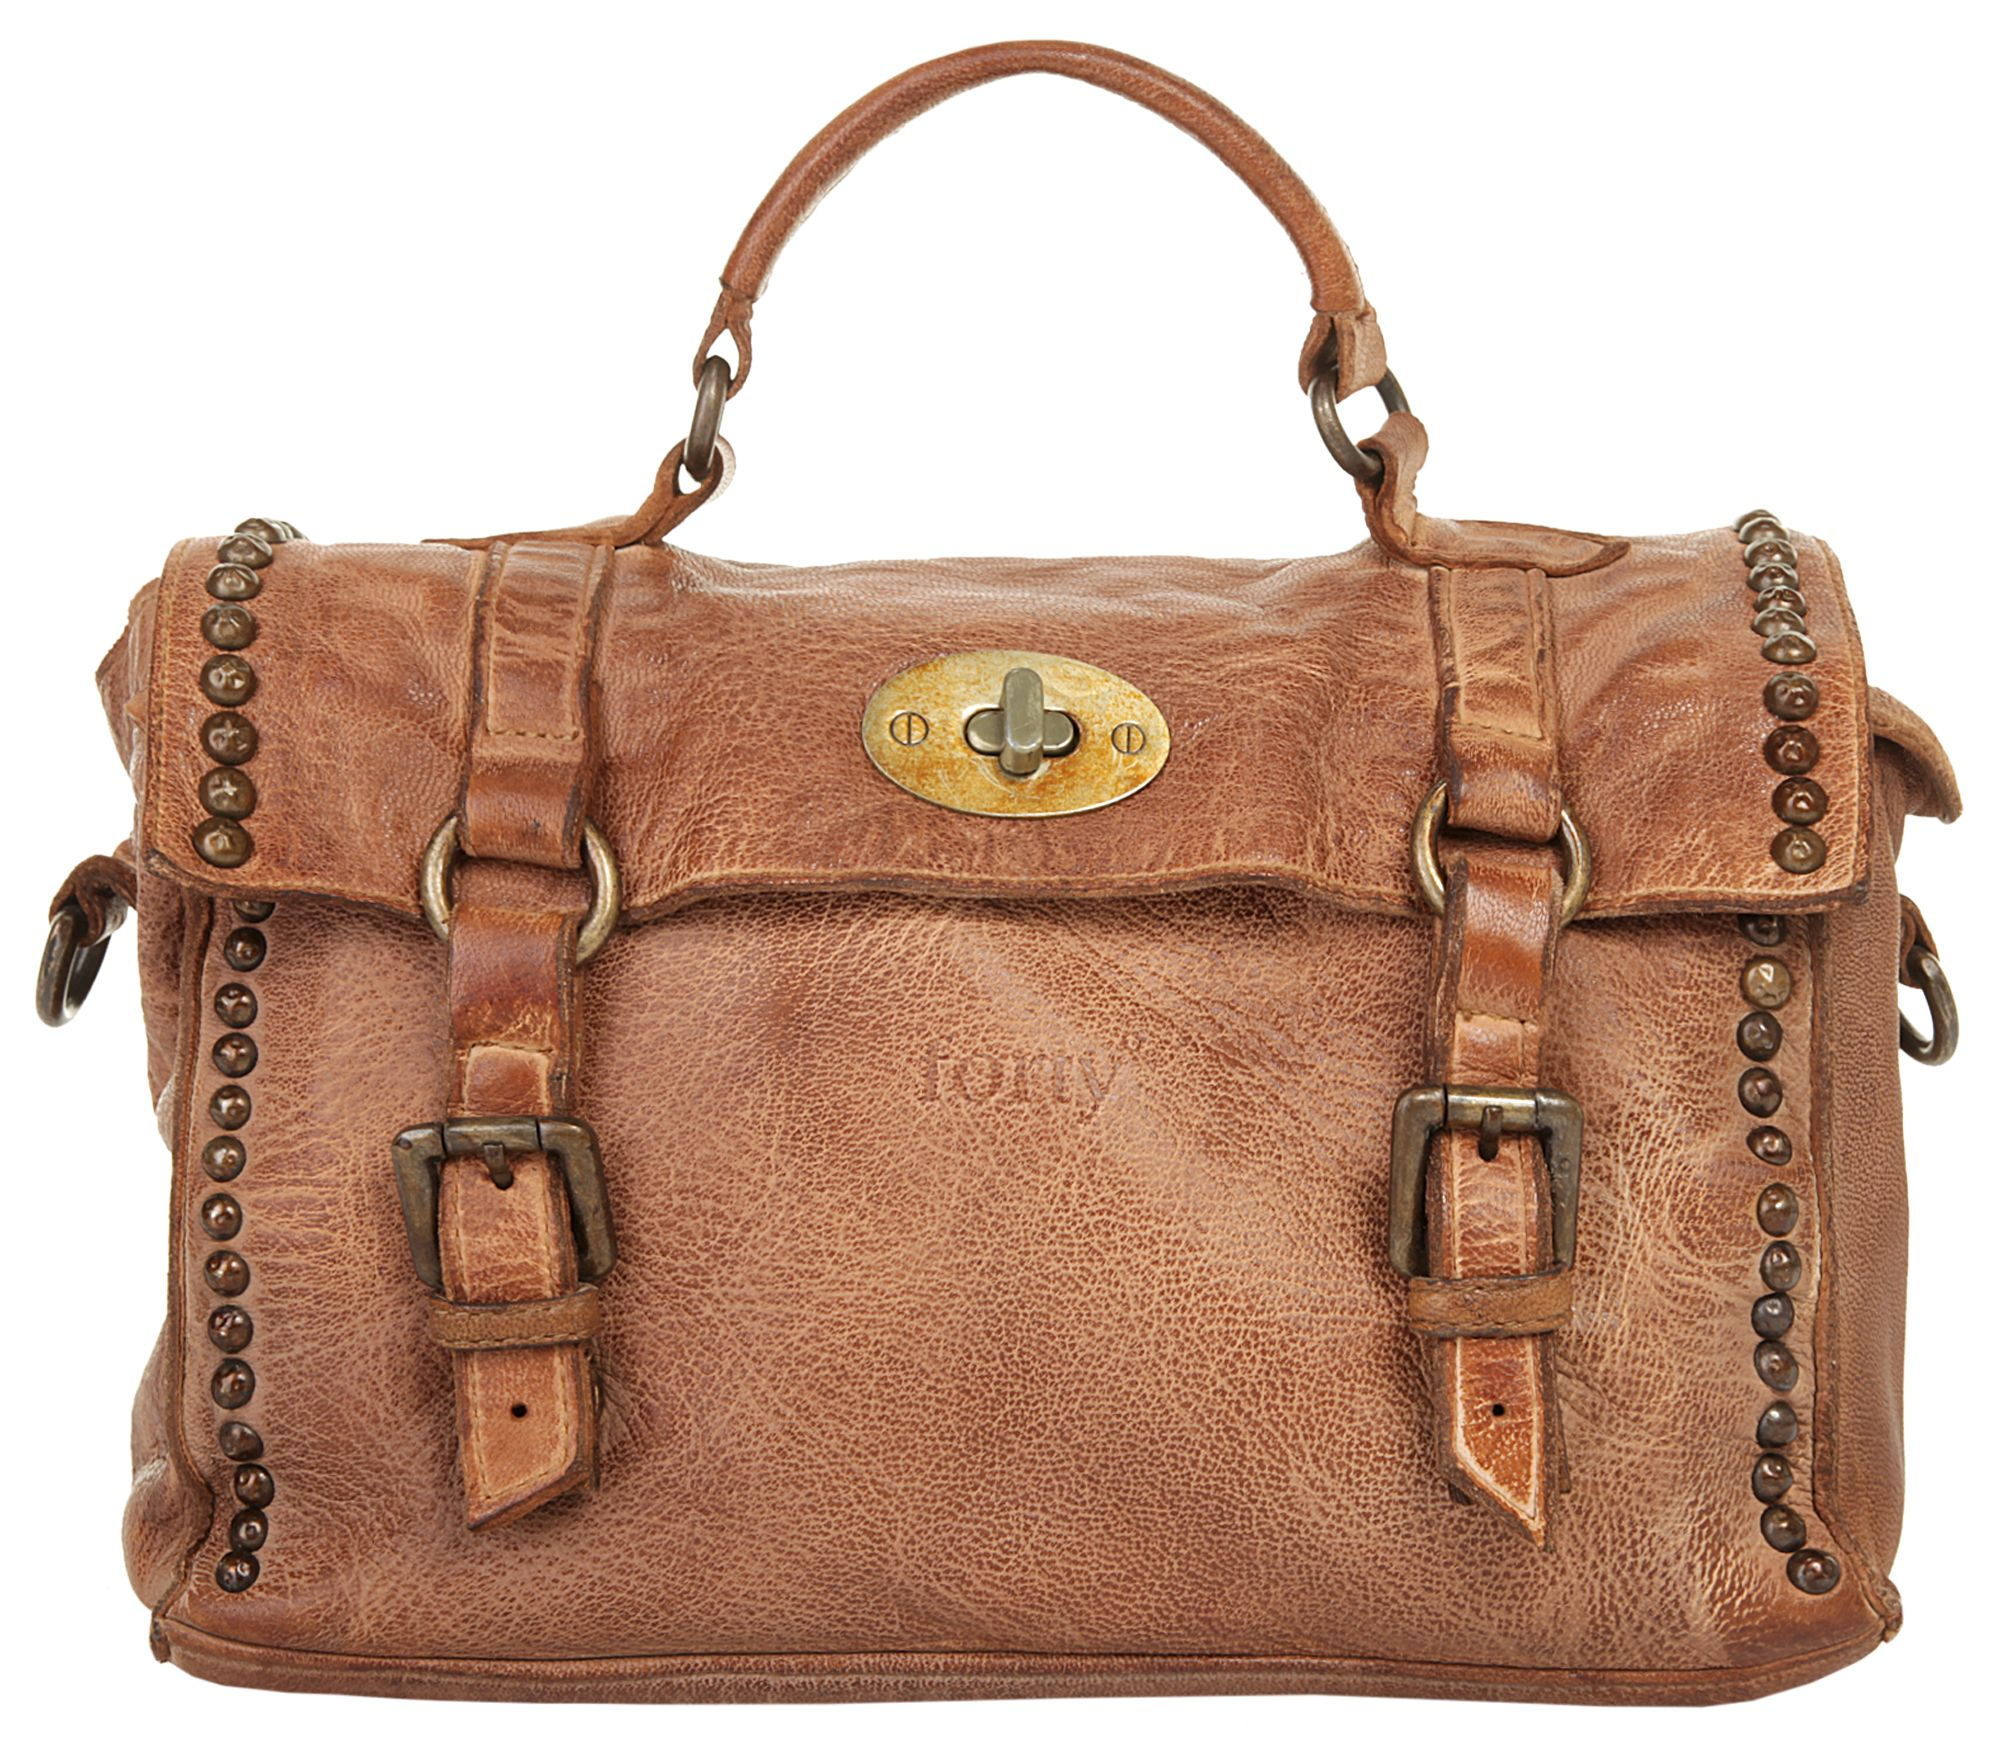 FORTY DEGREES Forty degrees Handtasche